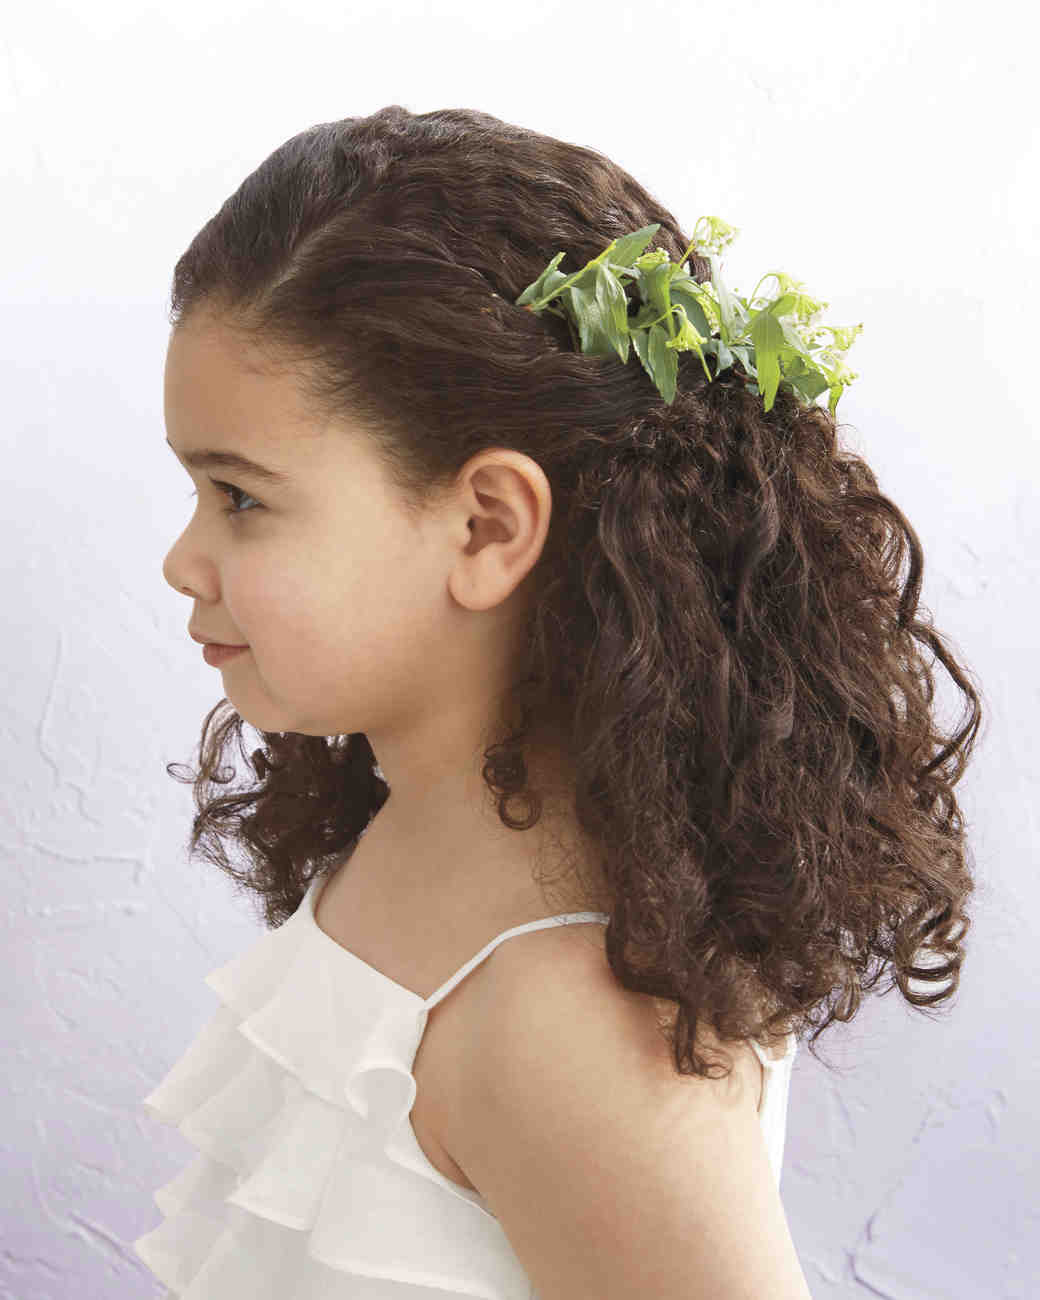 Sensational Flower Girl Hairstyles That Are Cute And Comfy Martha Stewart Short Hairstyles For Black Women Fulllsitofus